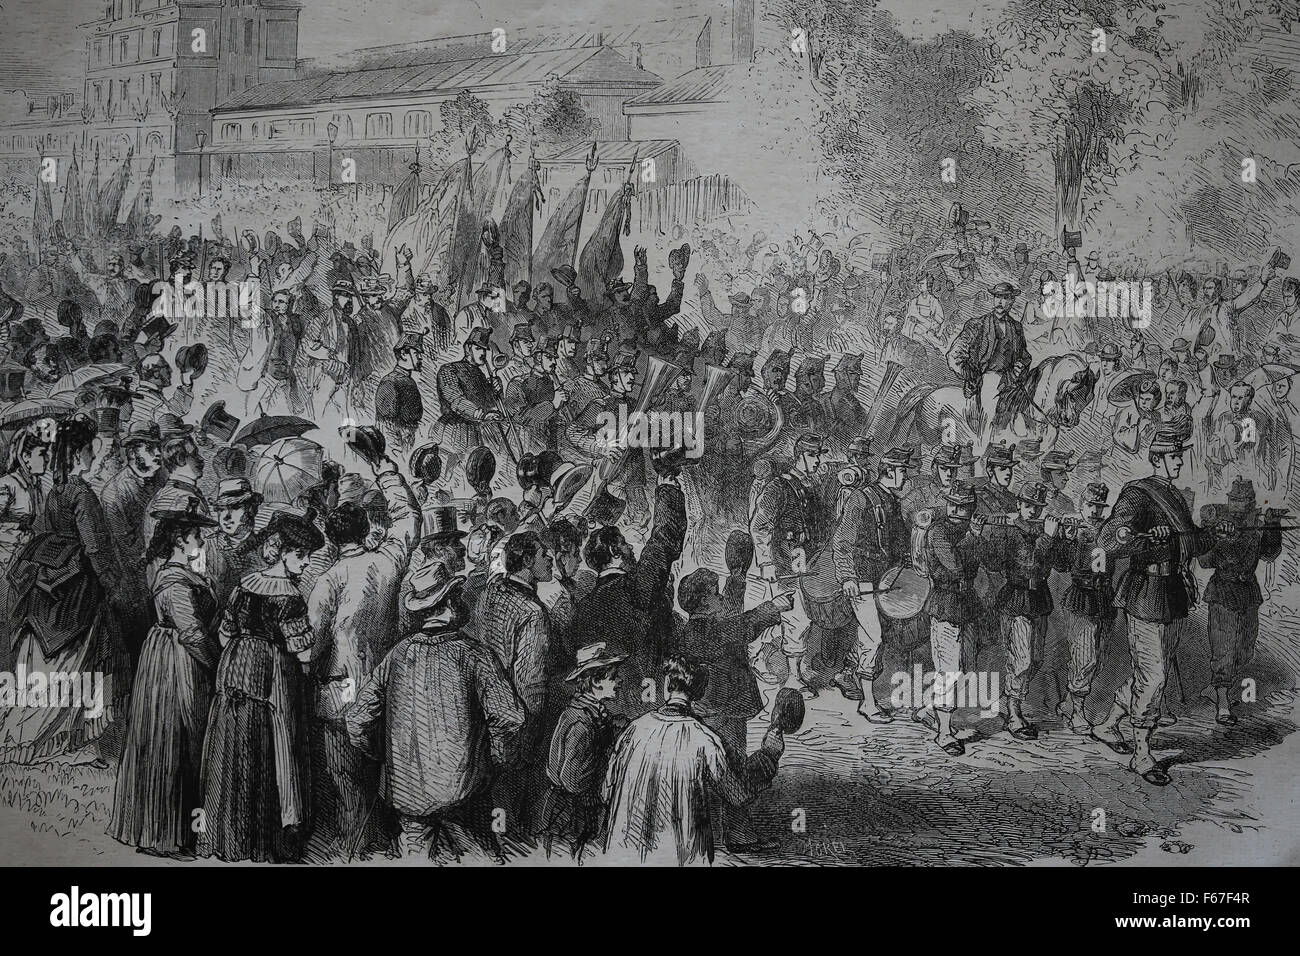 France. Macon. Fetes Franco-Swiss. The Swiss had their entry into town. Engraving by Le Monde Illustre, France, - Stock Image